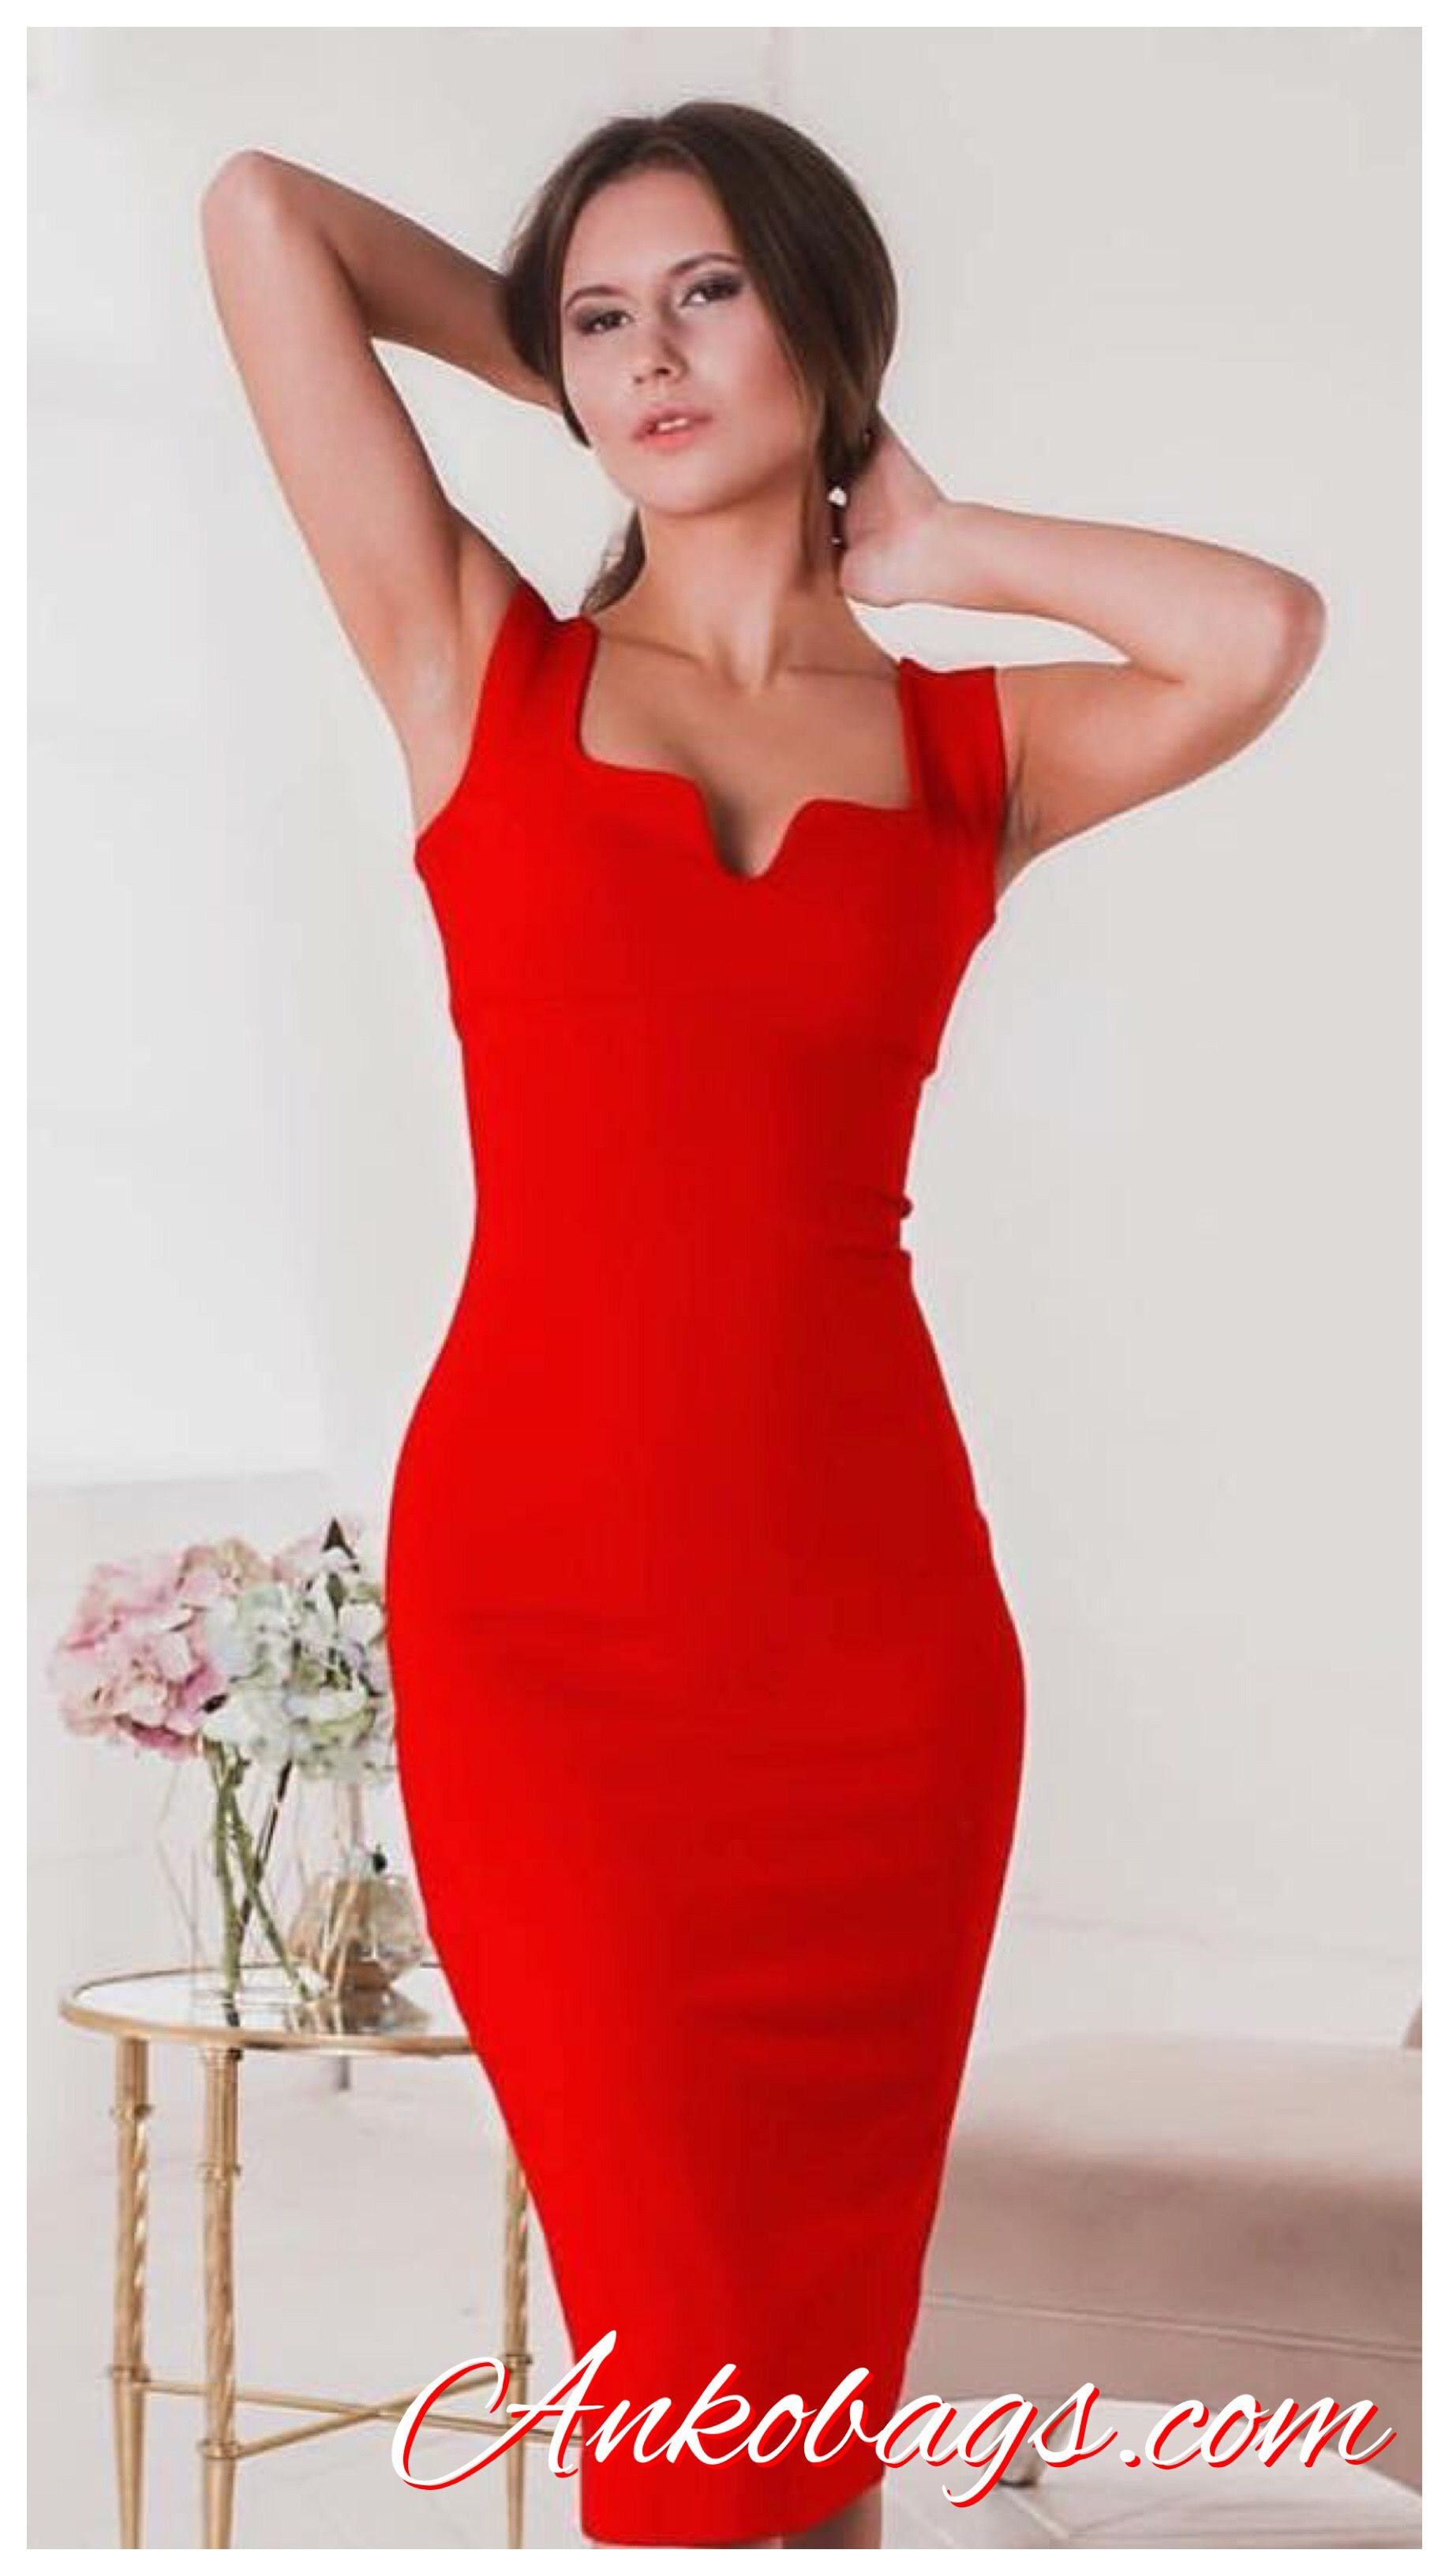 53b6bd96e1 Shop women s dresses for every occasion. Ankobags has the latest styles of  casual   formal women s dresses at low prices. 1 DAY DHL-EXPRESS WORLDWIDE  ...